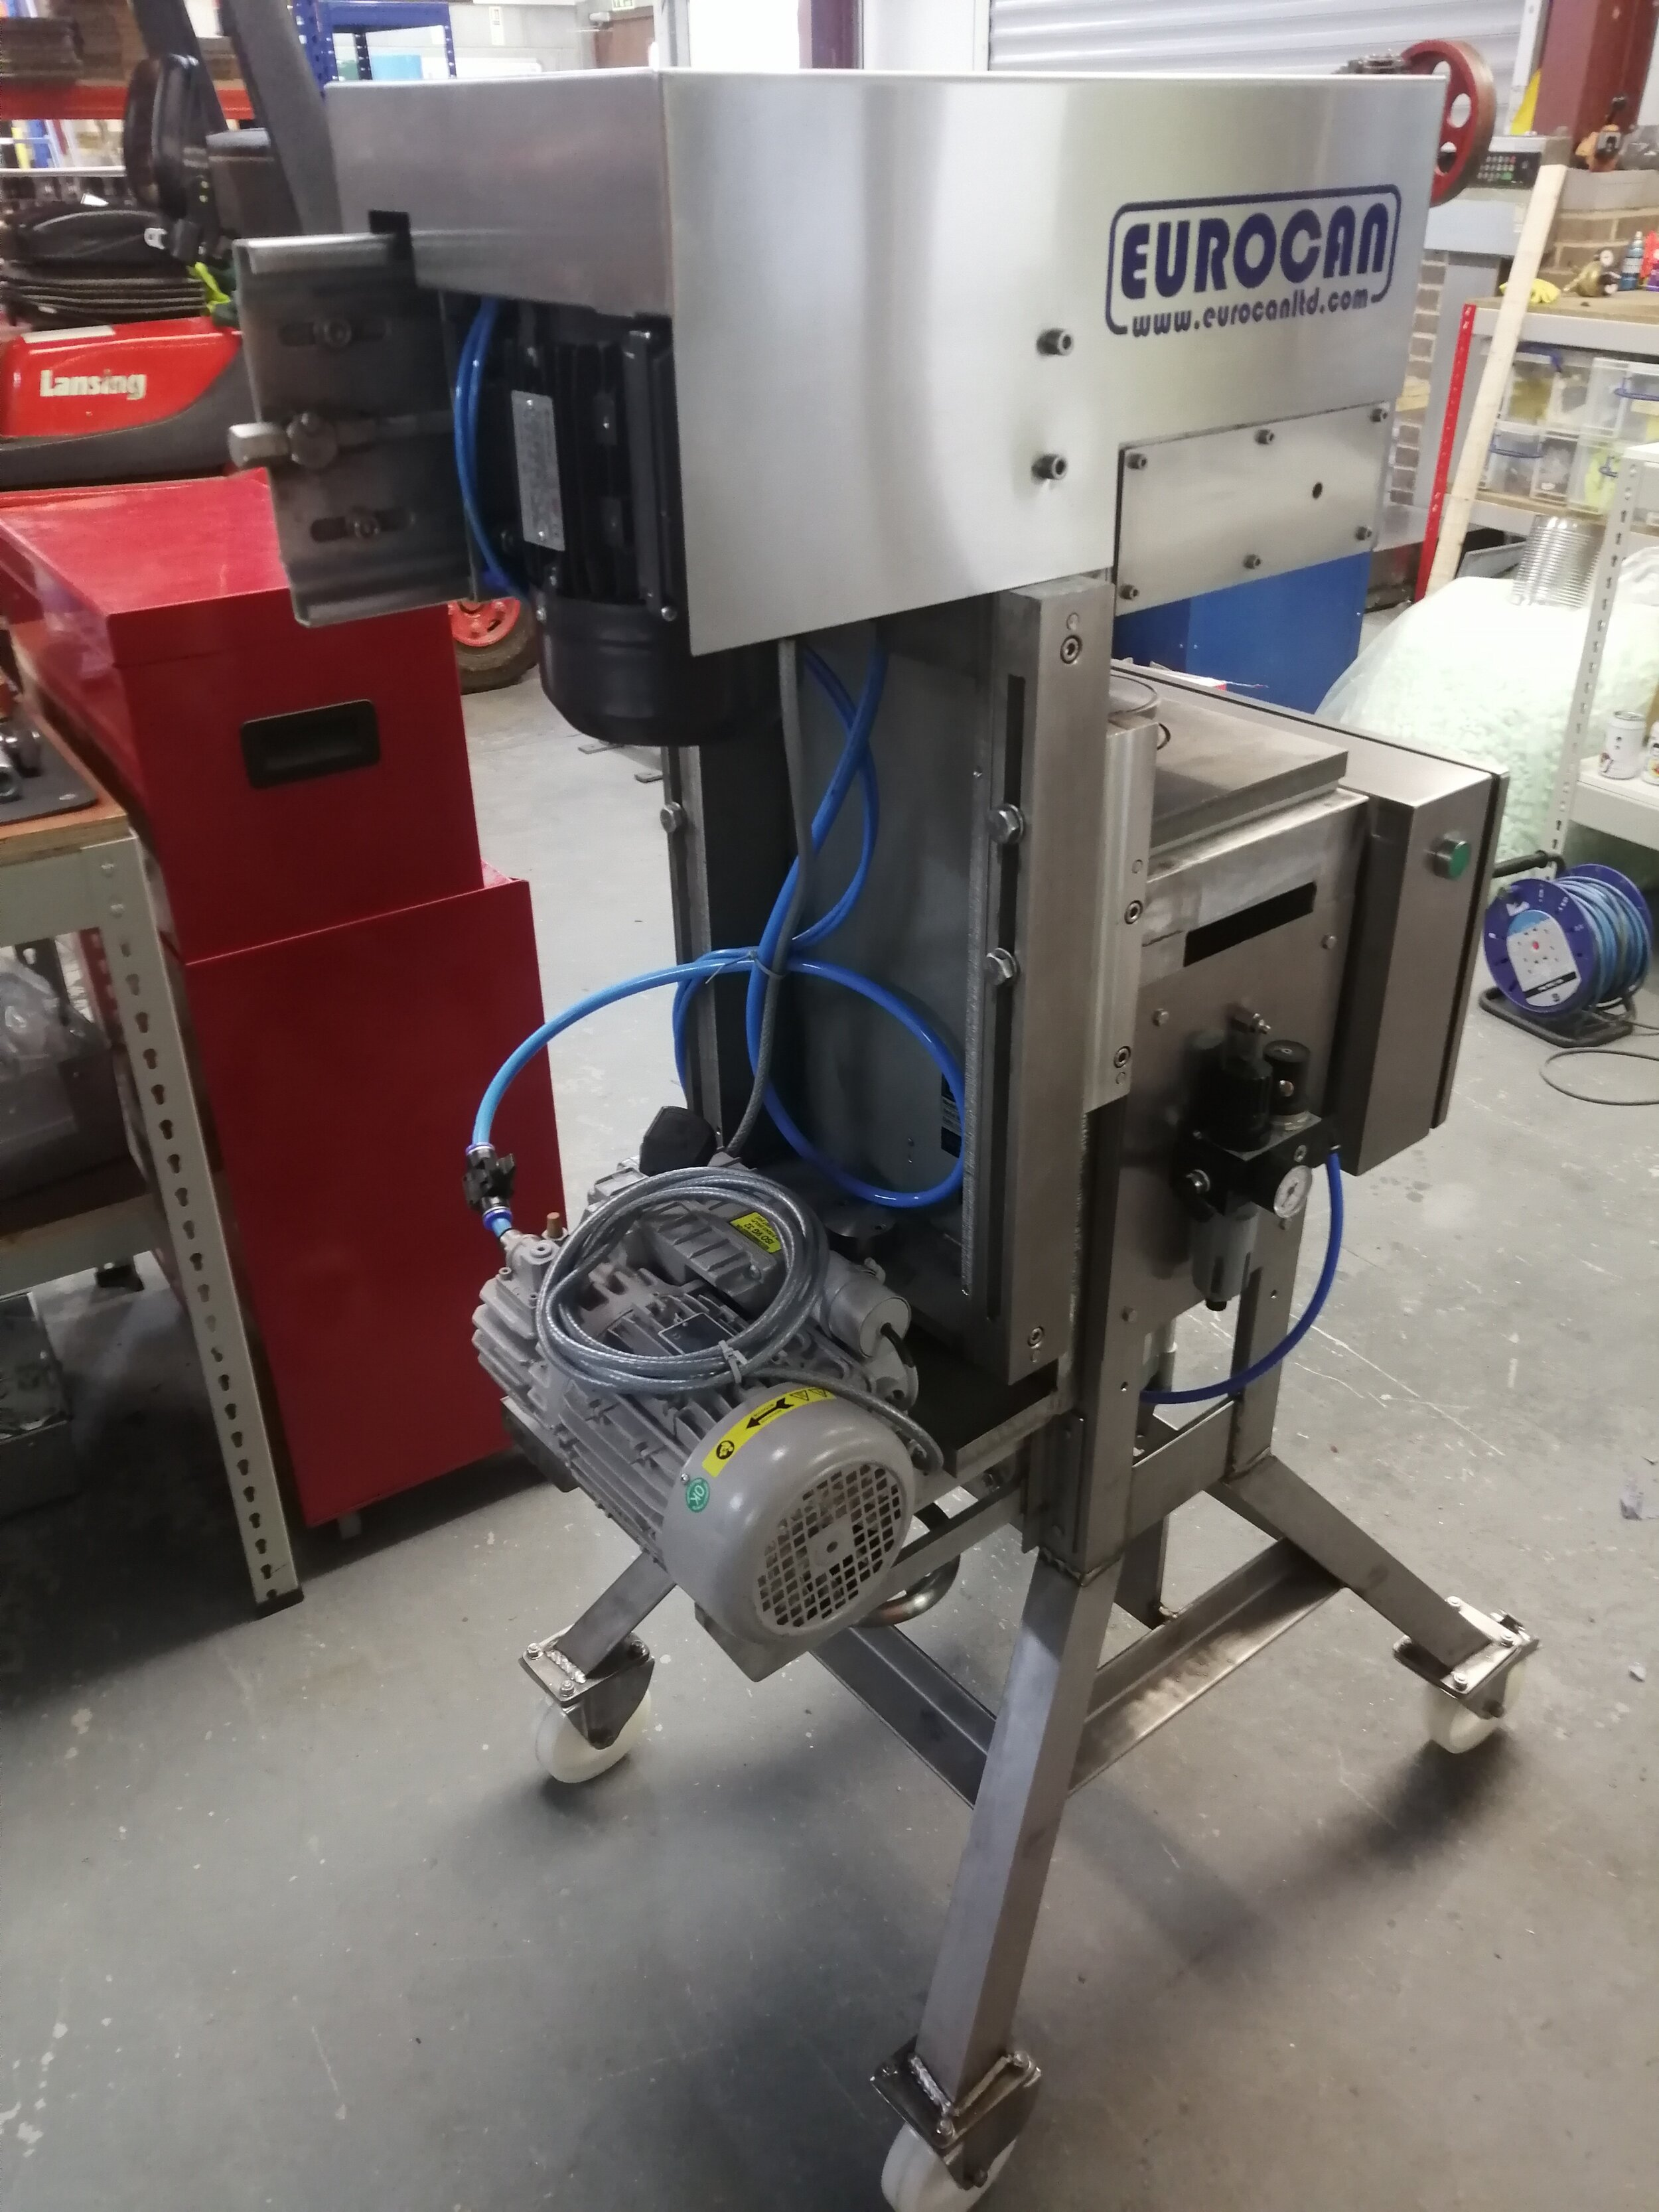 June 2019 - Our newly updated canning machines arrive at the bakery. We have two of these (one for each size of tin). Manufactured in stainless steel throughout. They are amazingly clever because they pull a vacuum on each tin. This removes the air from the tin and greatly enhances the shelf life of the cake. The vacuum pump is calibrated so that we can finely adjust the vacuum to exactly the right degree.